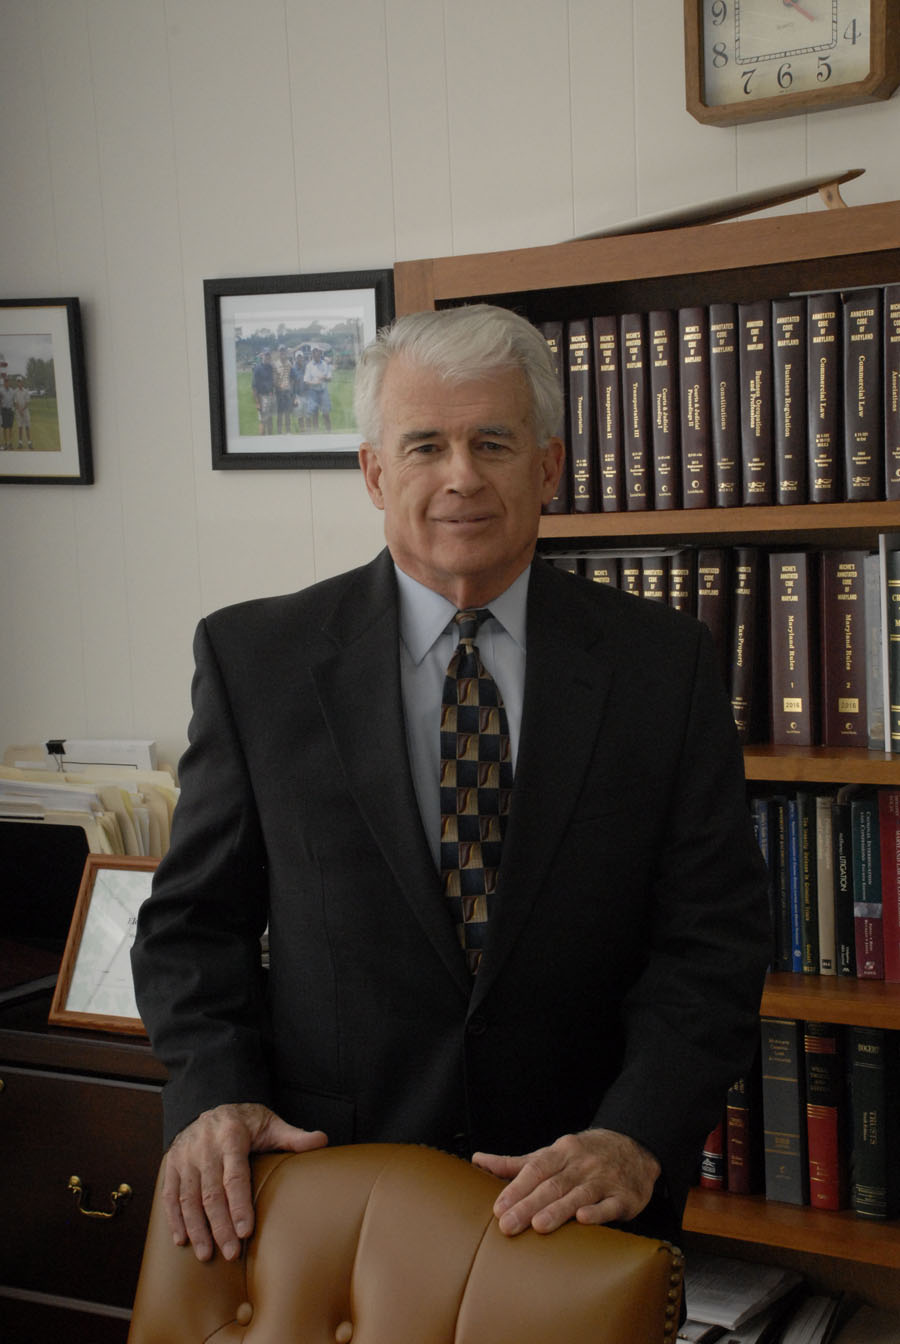 Attorney at law, C. Gregory Coburn, in his Ocean City law office